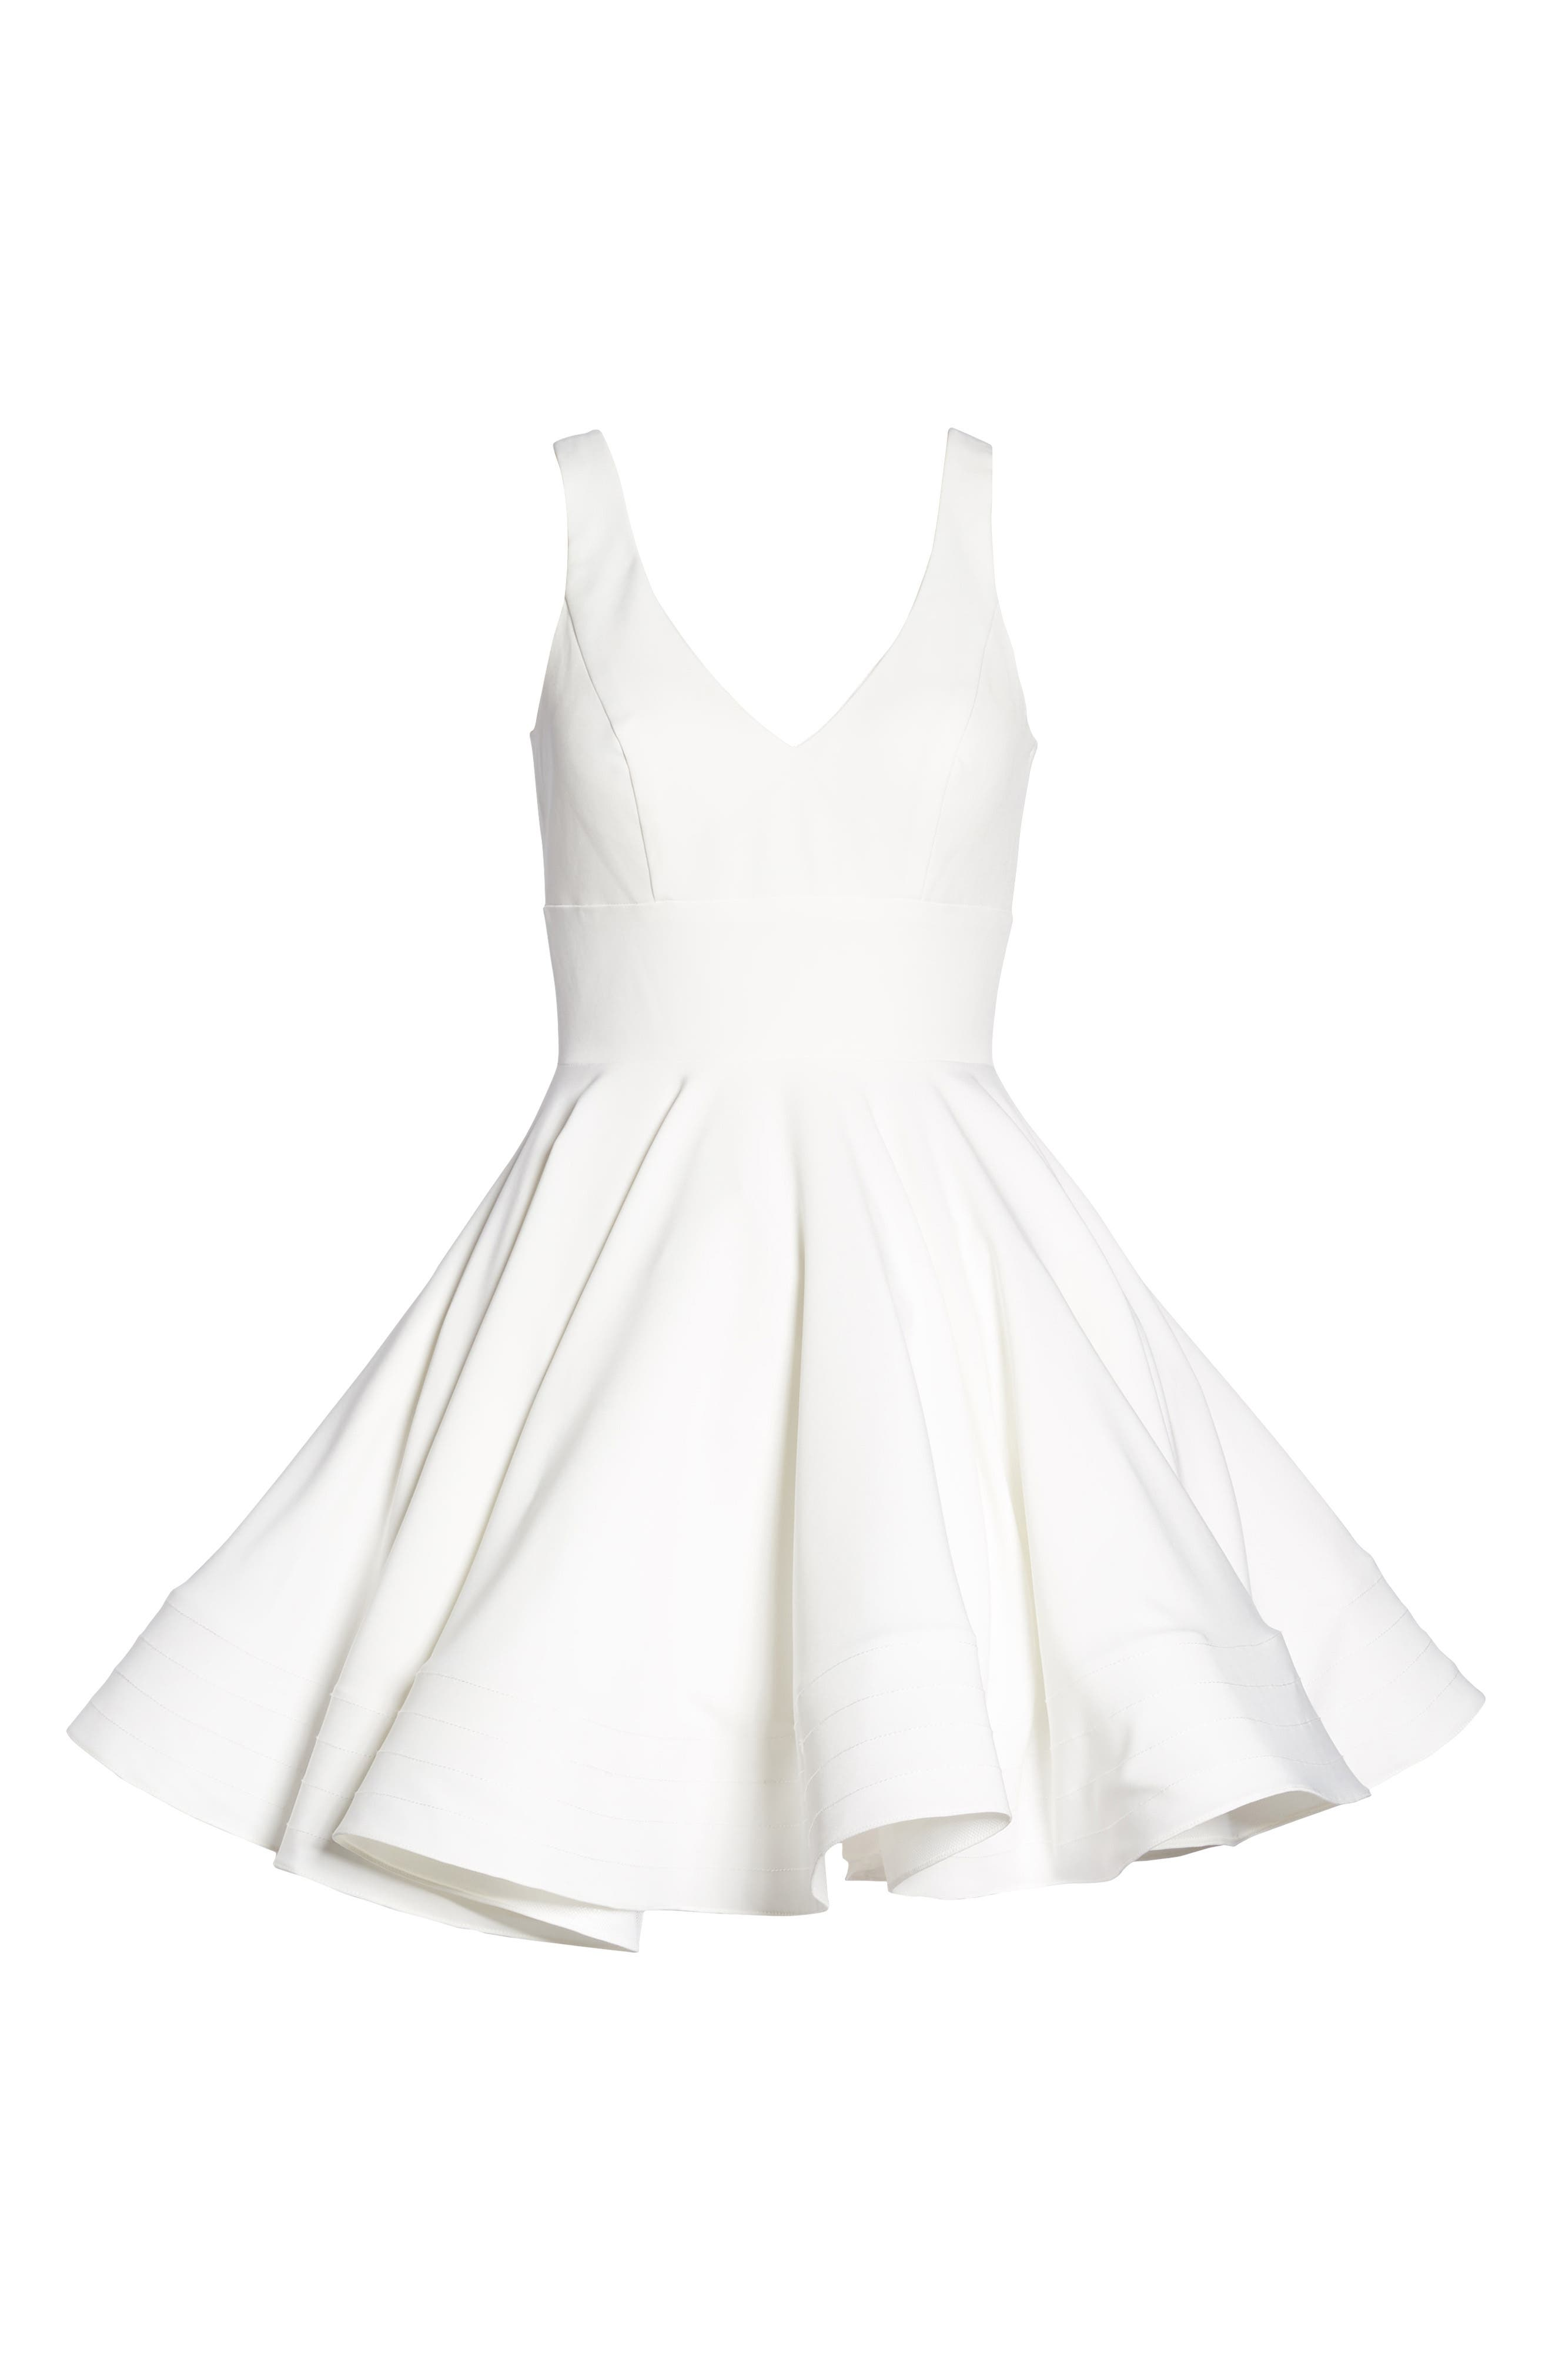 Double V-Neck Fit & Flare Party Dress,                             Alternate thumbnail 6, color,                             Ivory